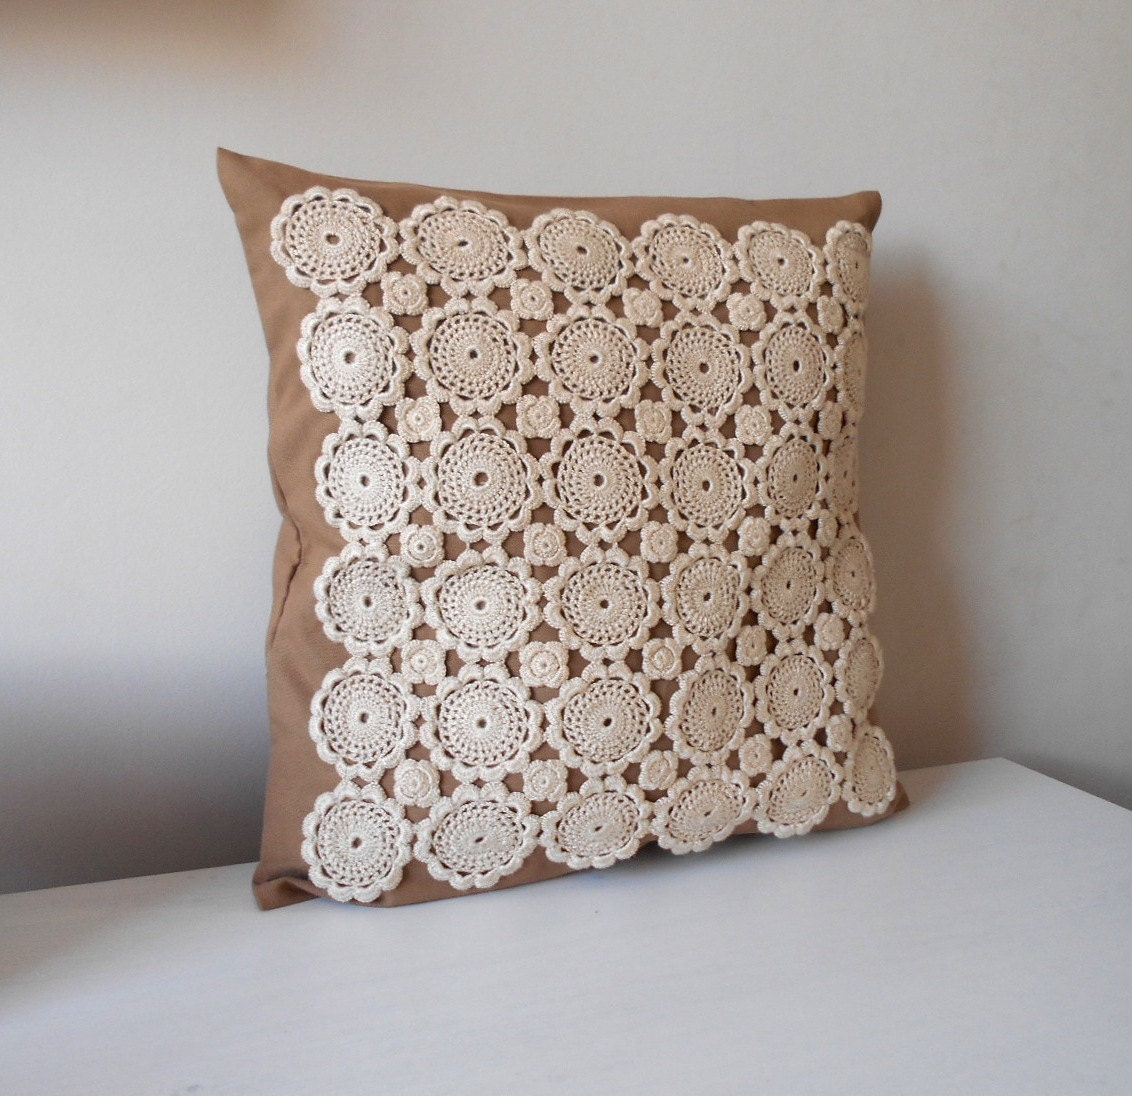 Crochet Pillow Cover Rustic Pillow Decorative Throw Pillow